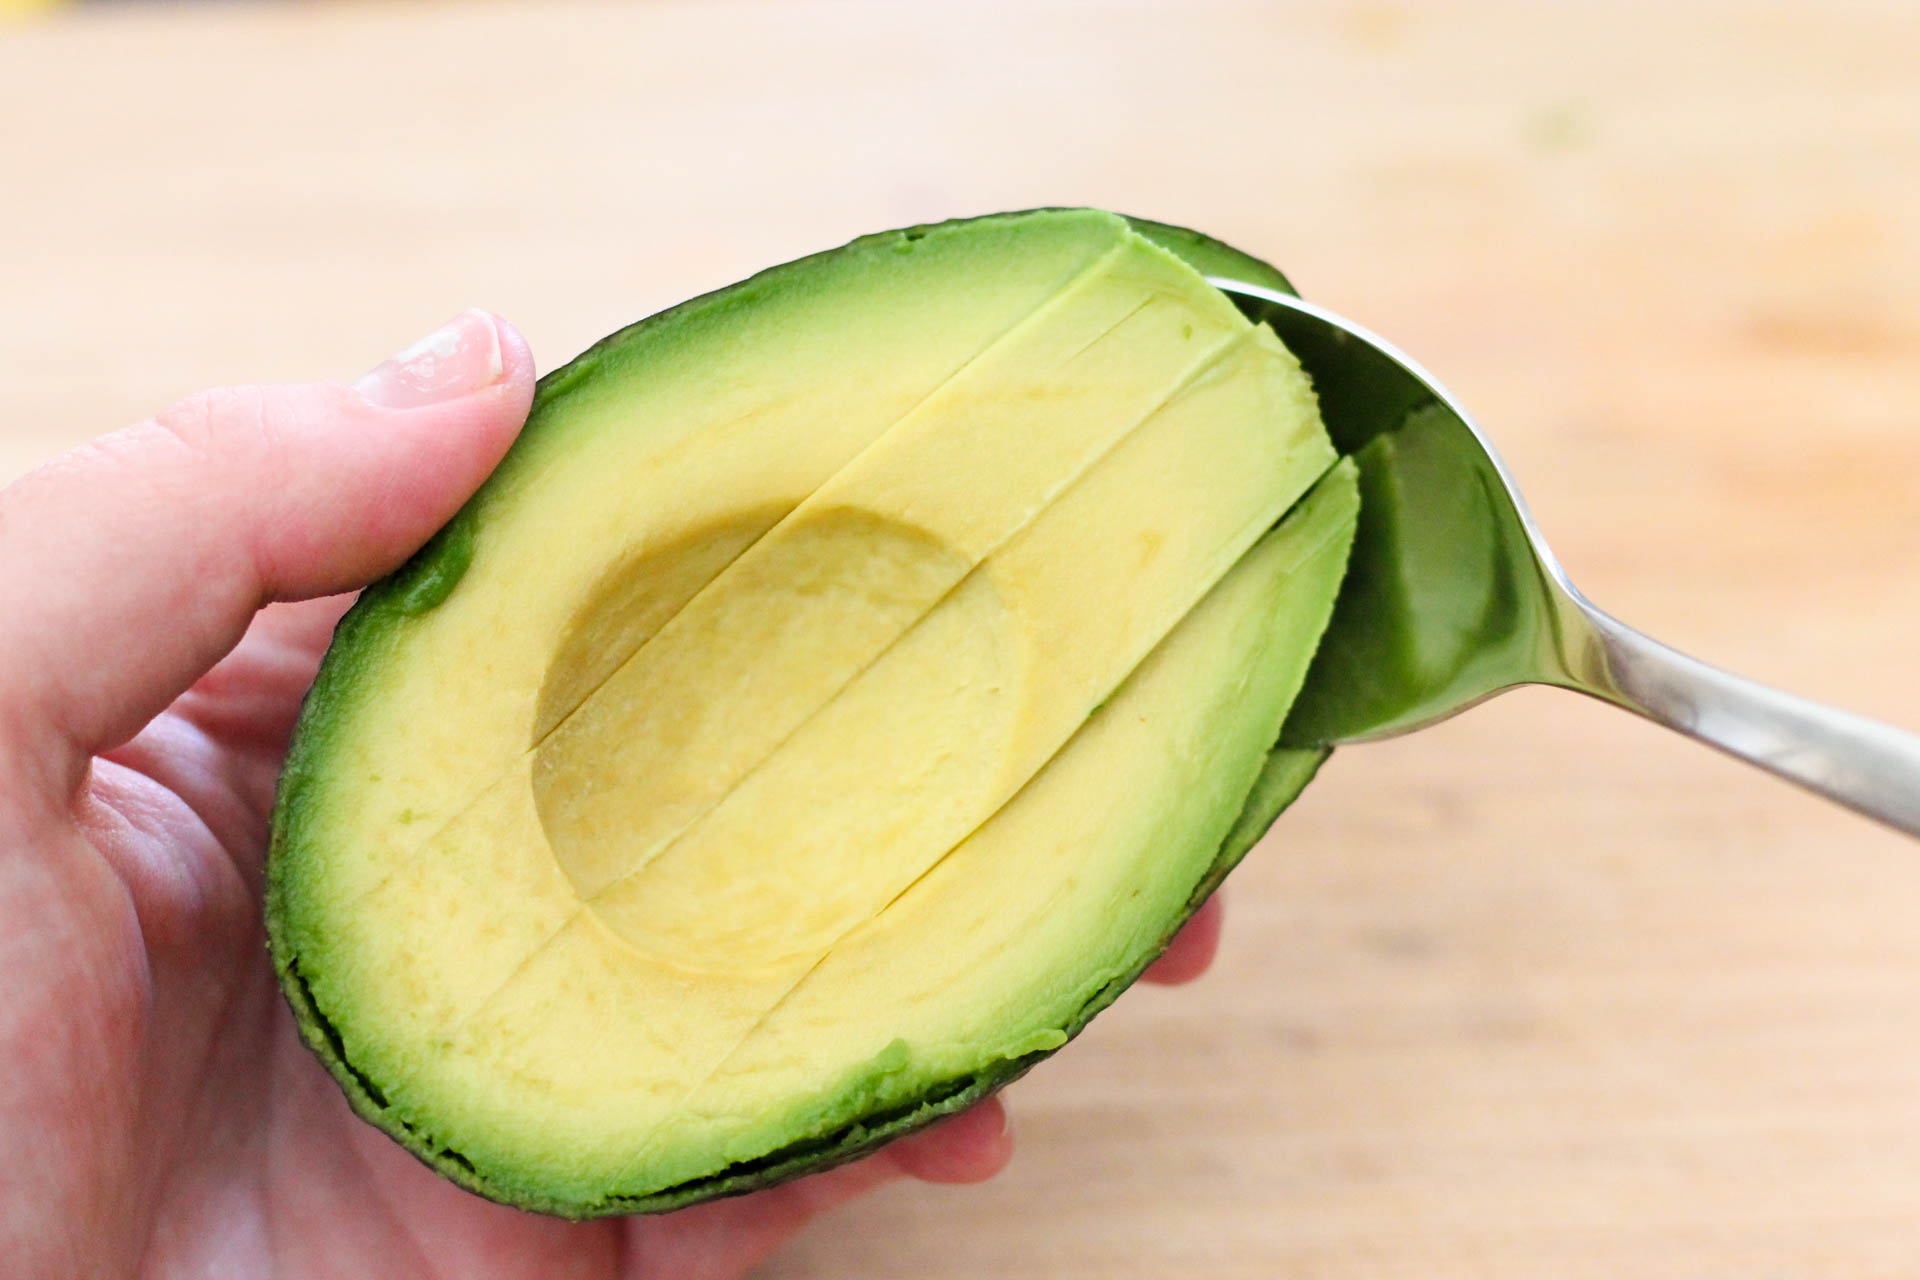 Avocado sliced in half with long vertical cuts